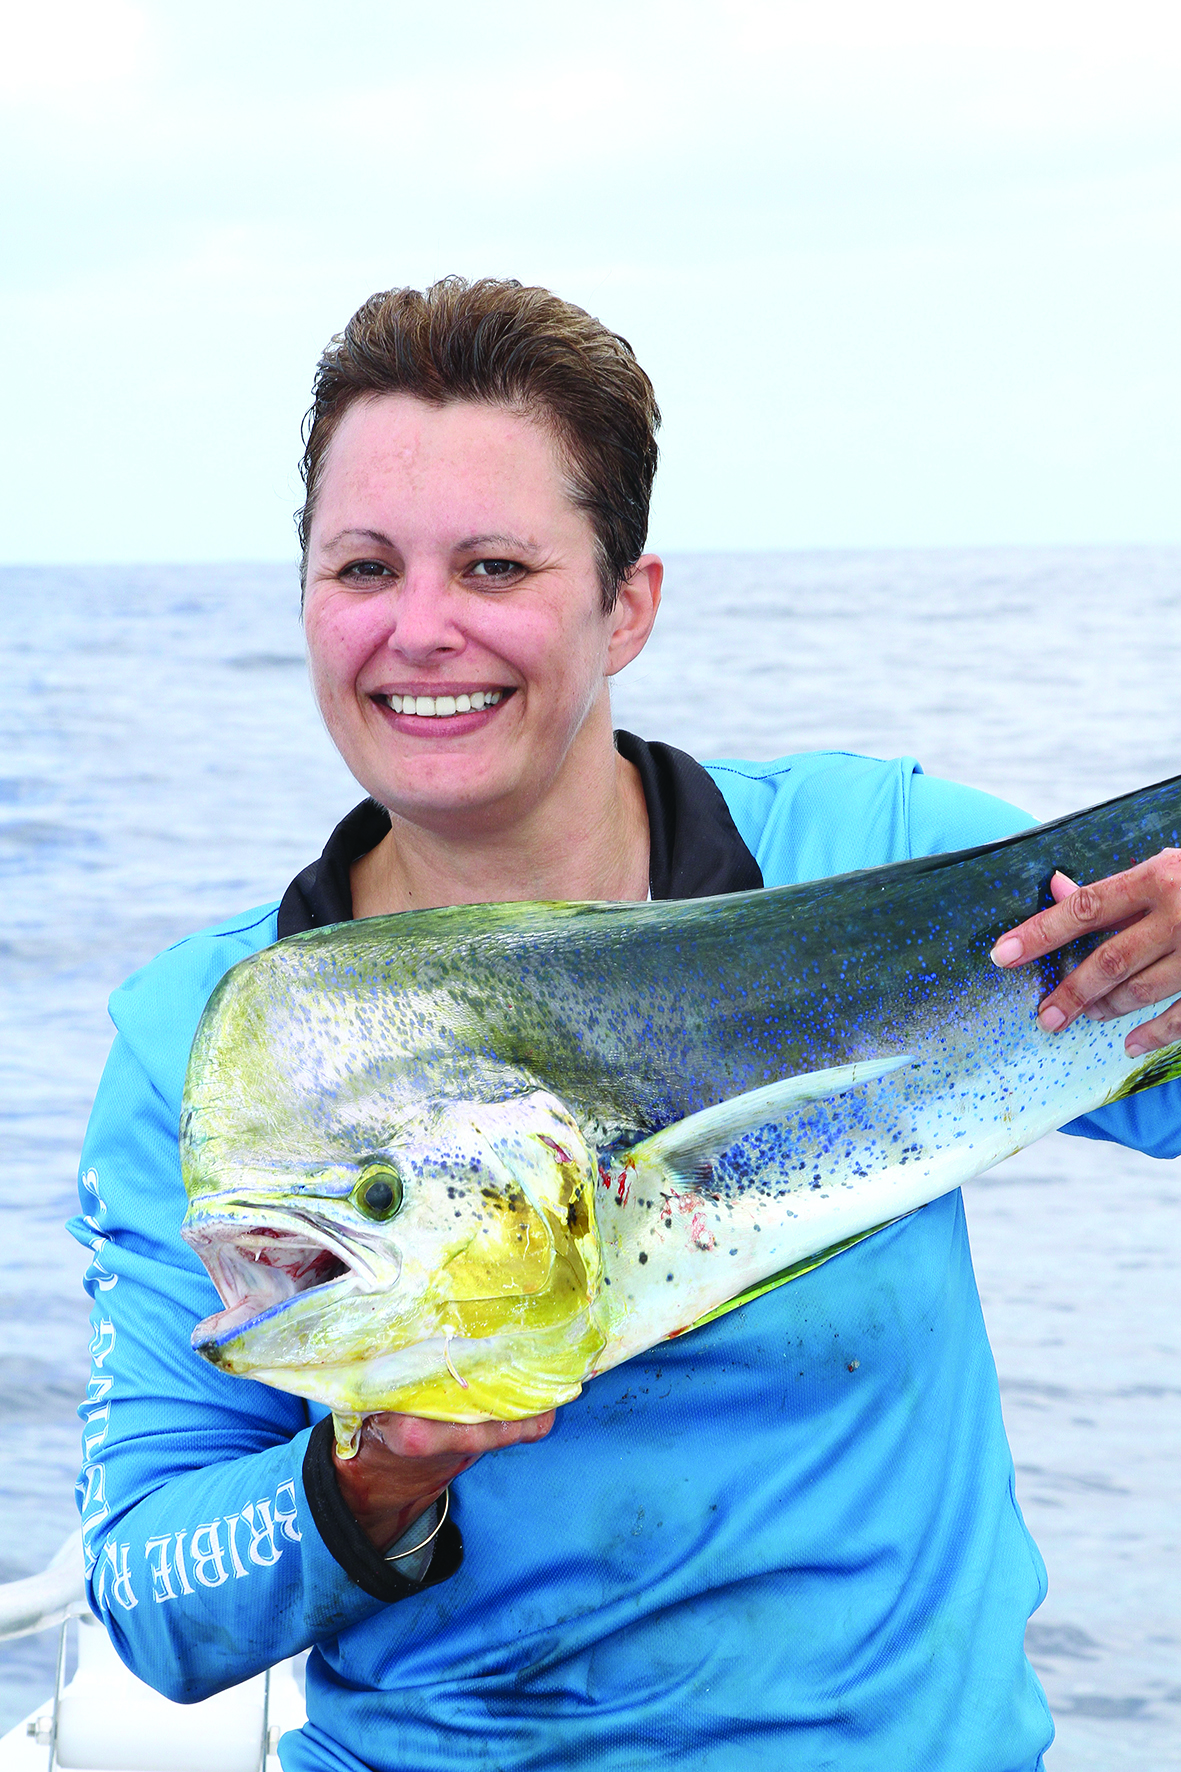 One more dolphin fish caught by Tammy Oostenbroek.